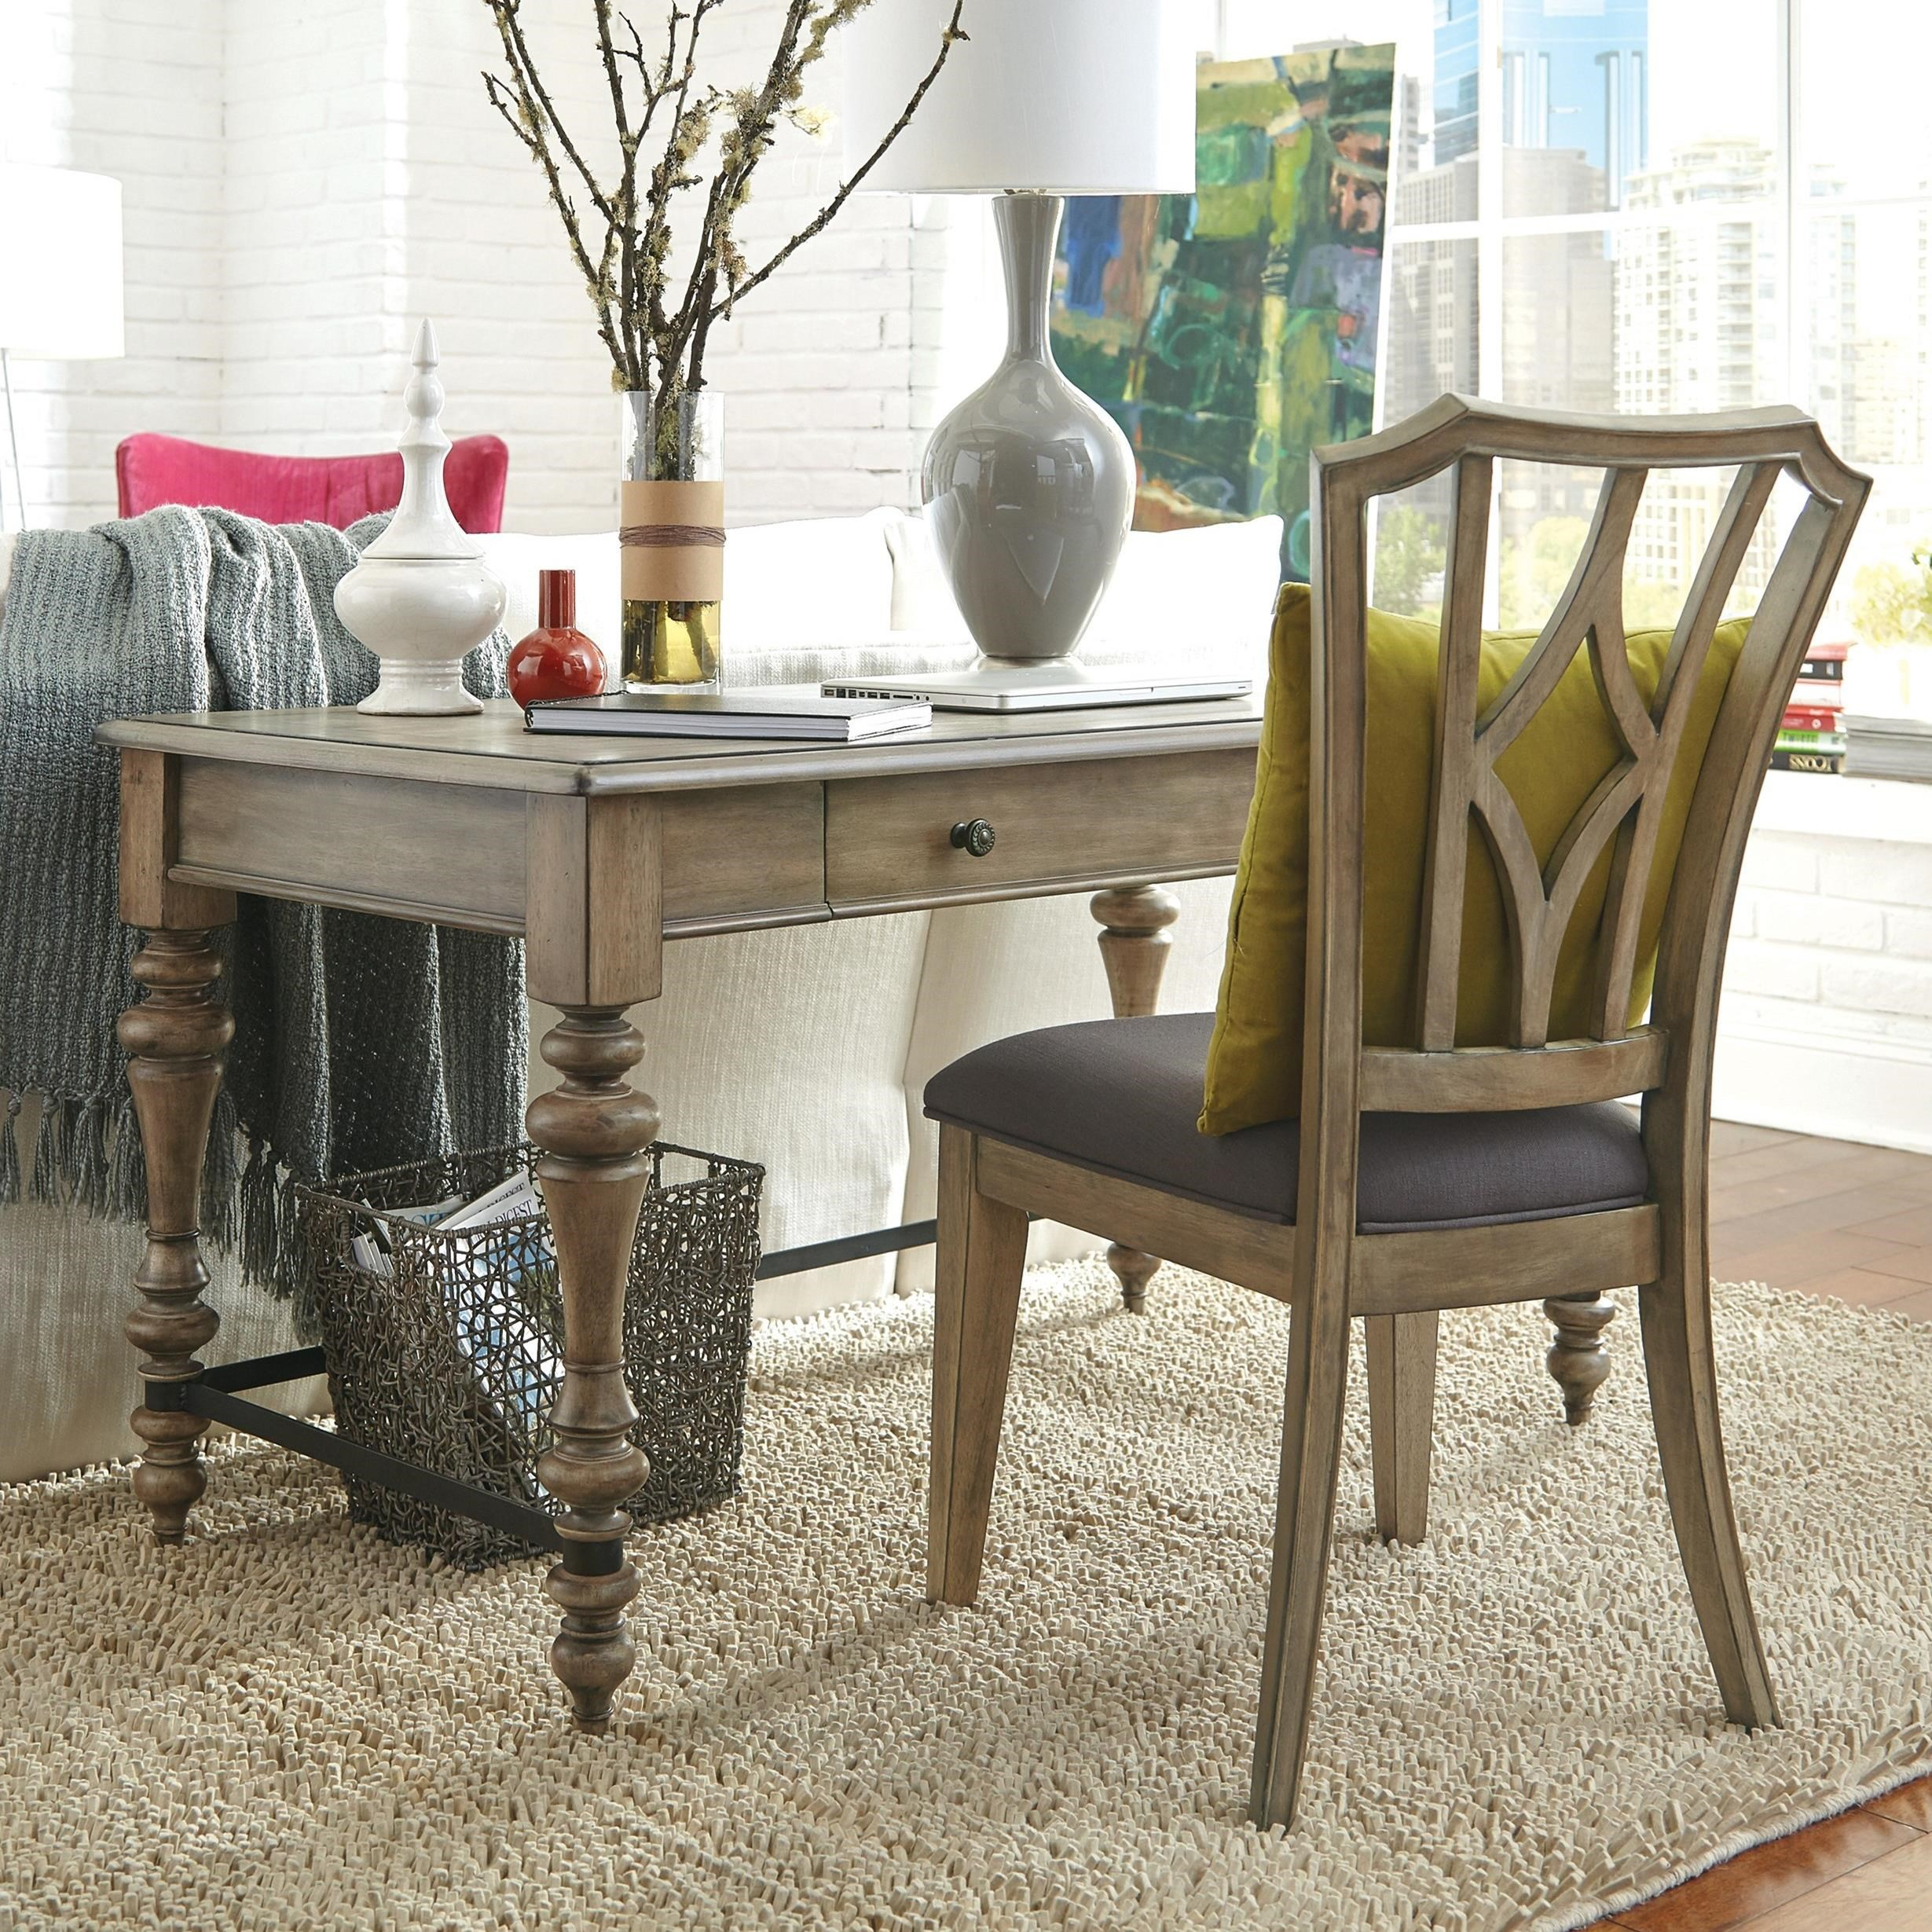 Writing Desk With Electric Outlet Bar. Low Price Guarantee Badge By Riverside  Furniture